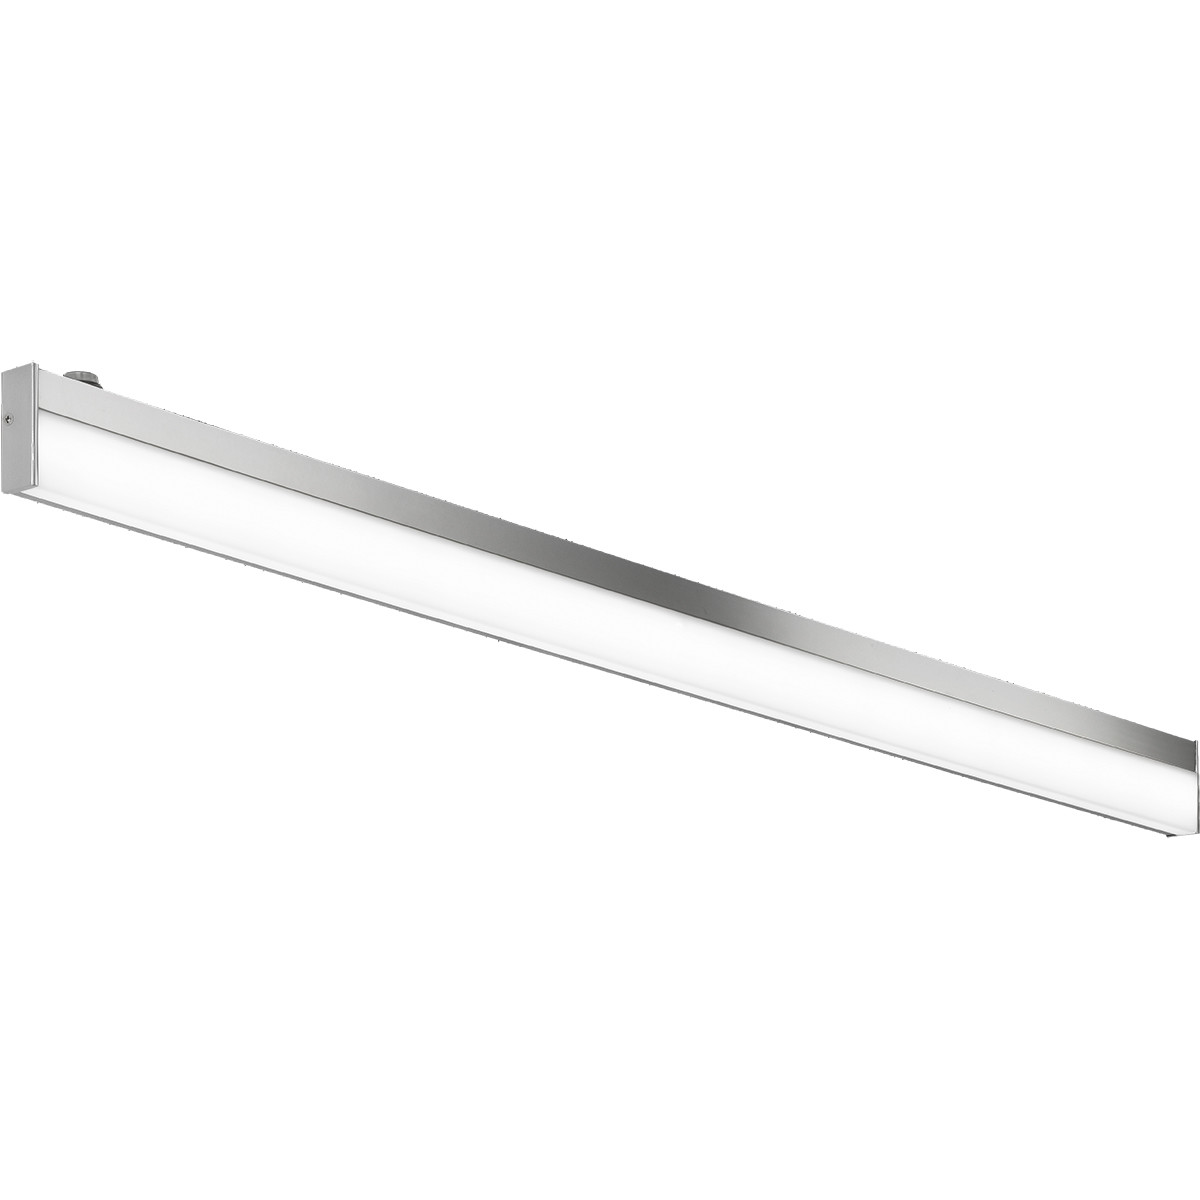 OSRAM - LED Spiegelverlichting - Trion Nalina - 12W - Spatwaterdicht IP44 - Warm Wit 3000K - Glans C